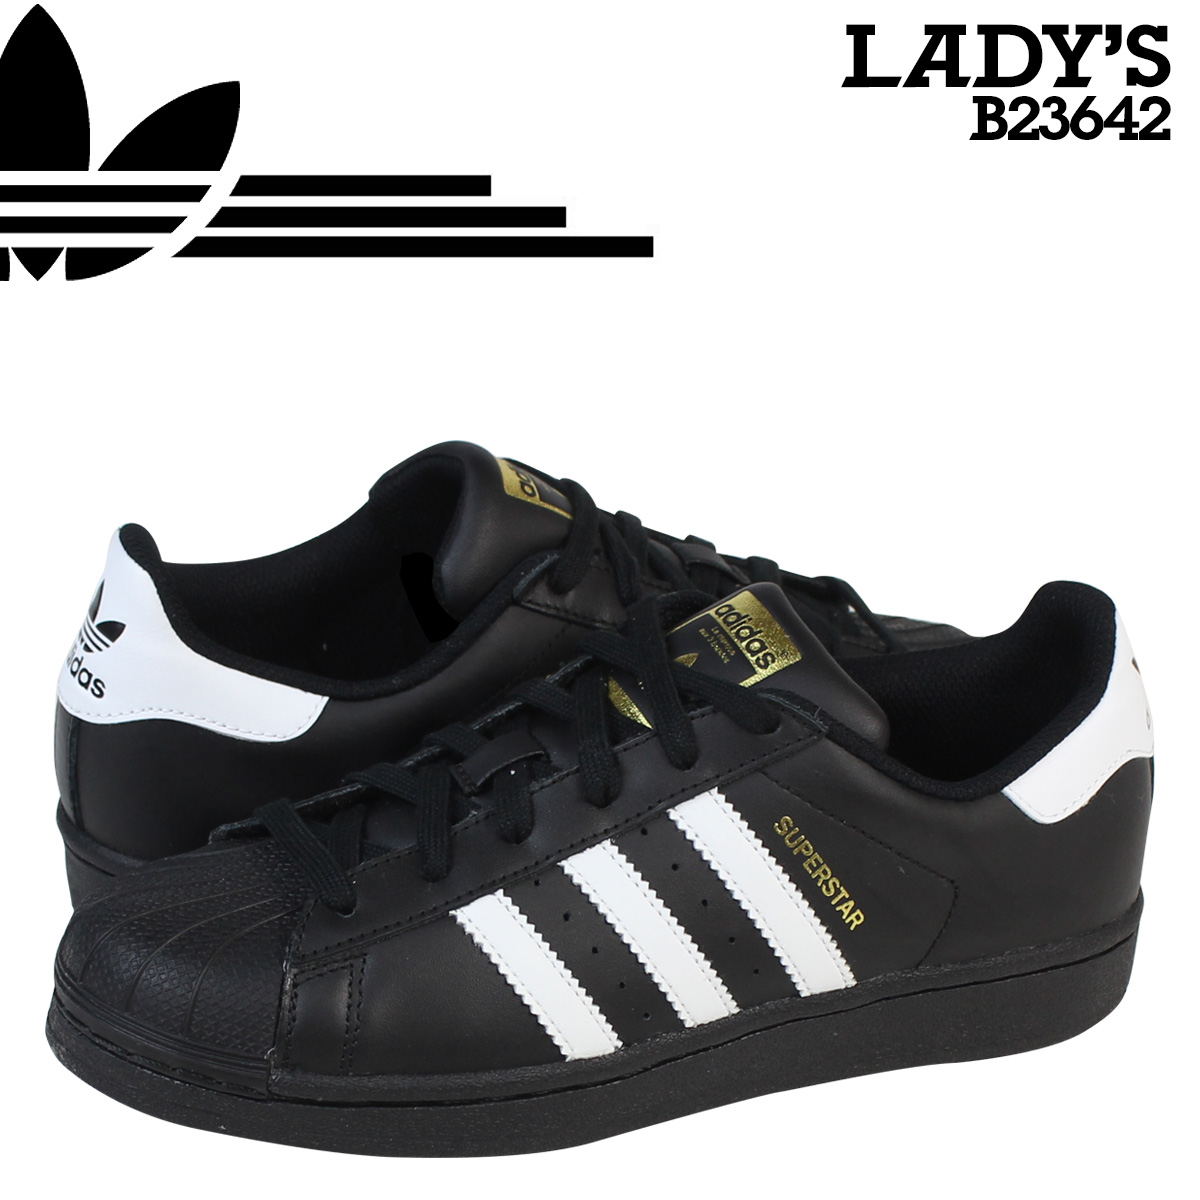 Whats up Sports | Rakuten Global Market: adidas Originals adidas originals women's SUPERSTAR FOUNDATION J sneakers superstar Foundation Junior B23642 black